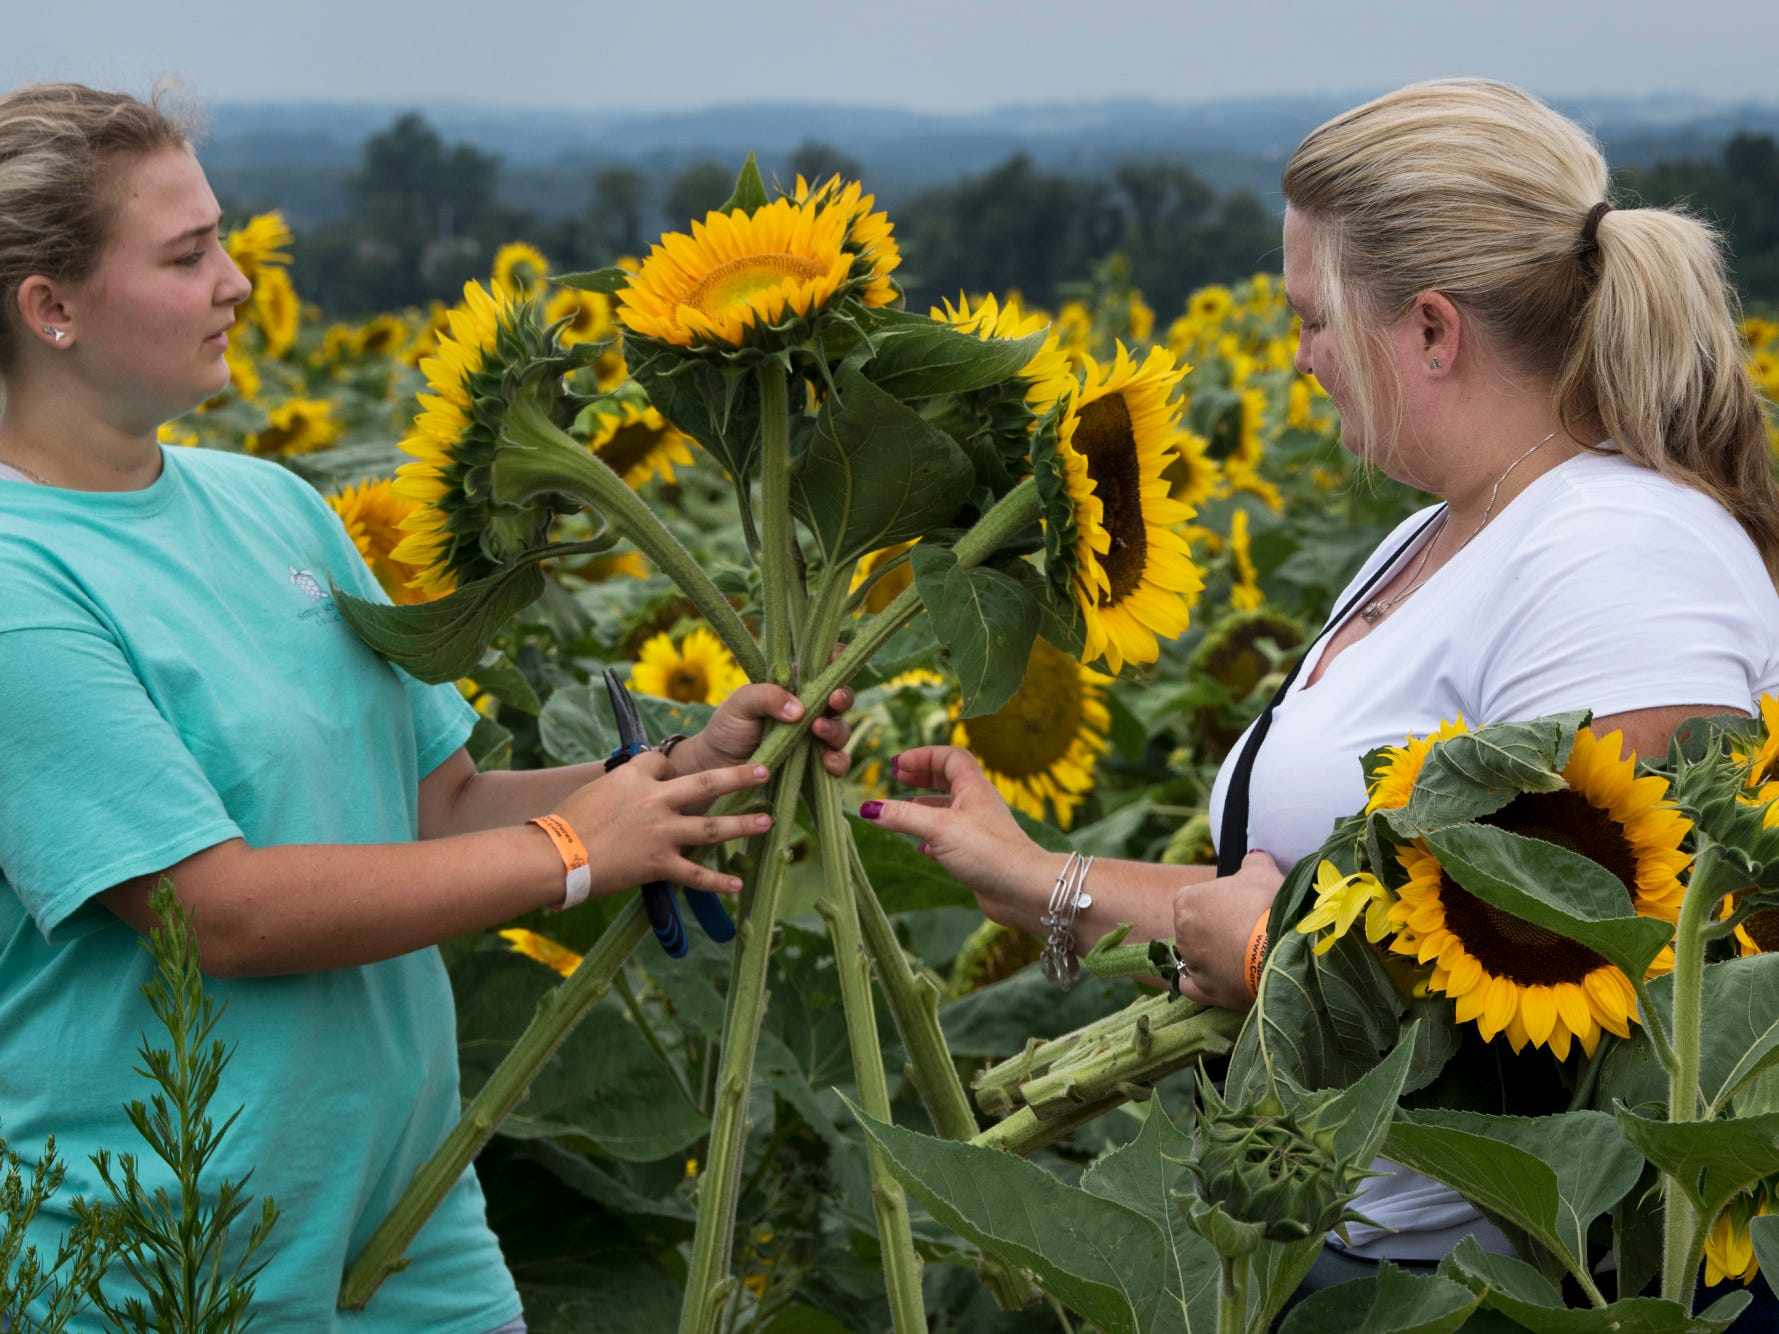 Elizabeth, left, and Kristy Ballwanz, of Baltimore, gather sunflowers during the 2nd Annual Sunflower Festival at Maple Lawn Farms near New Park Sunday.